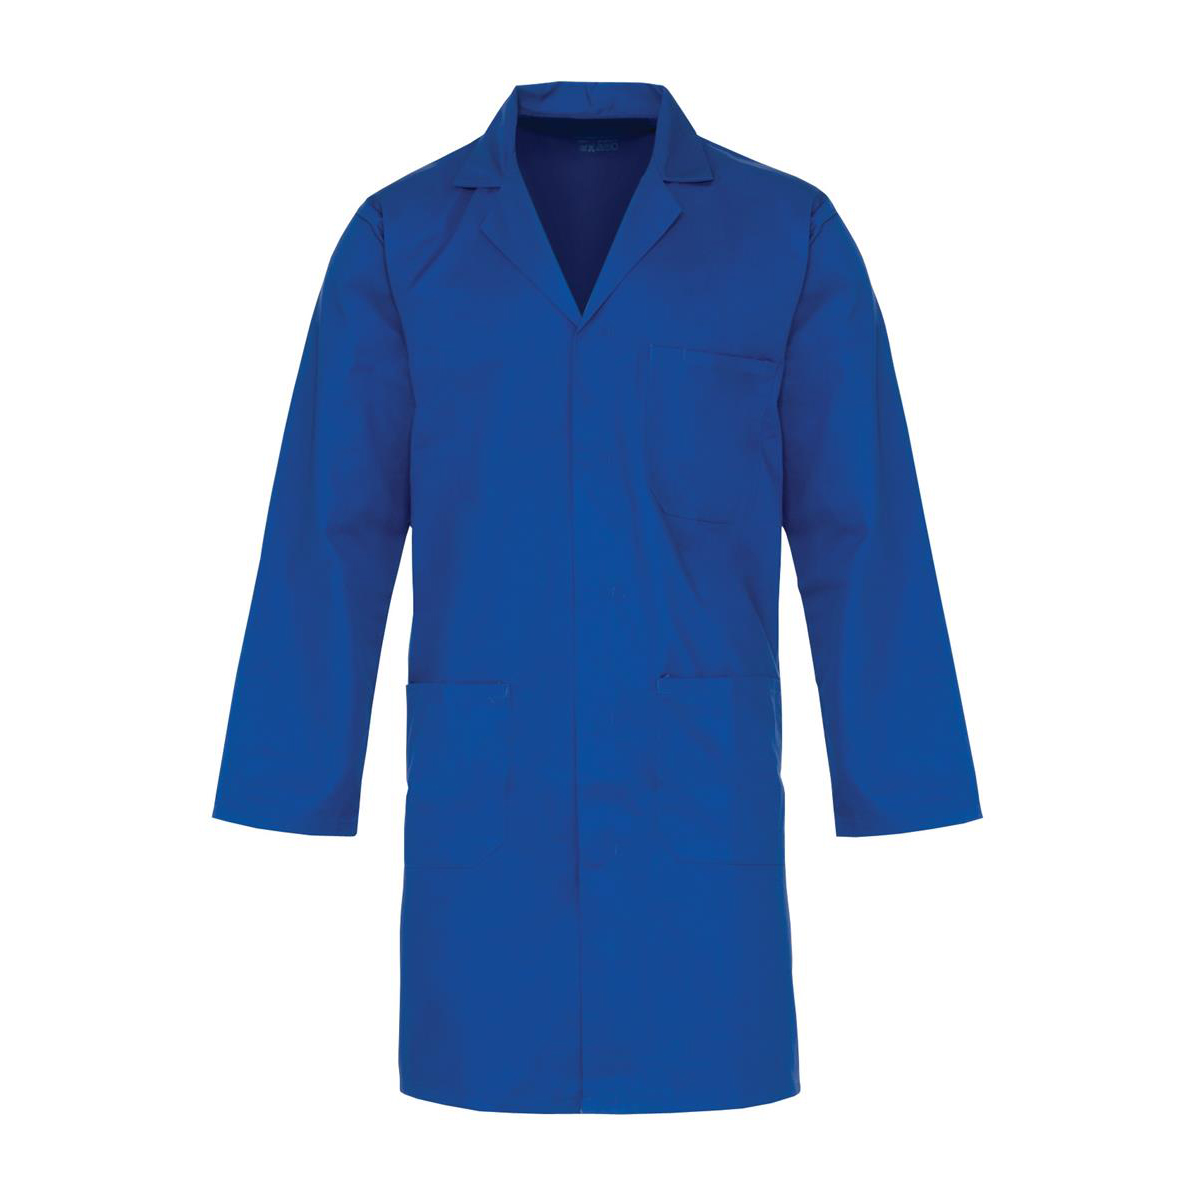 Safety Click Lab Coat Polycotton with 3 Pockets Large Navy Ref PCWCN44 *Approx 3 Day Leadtime*